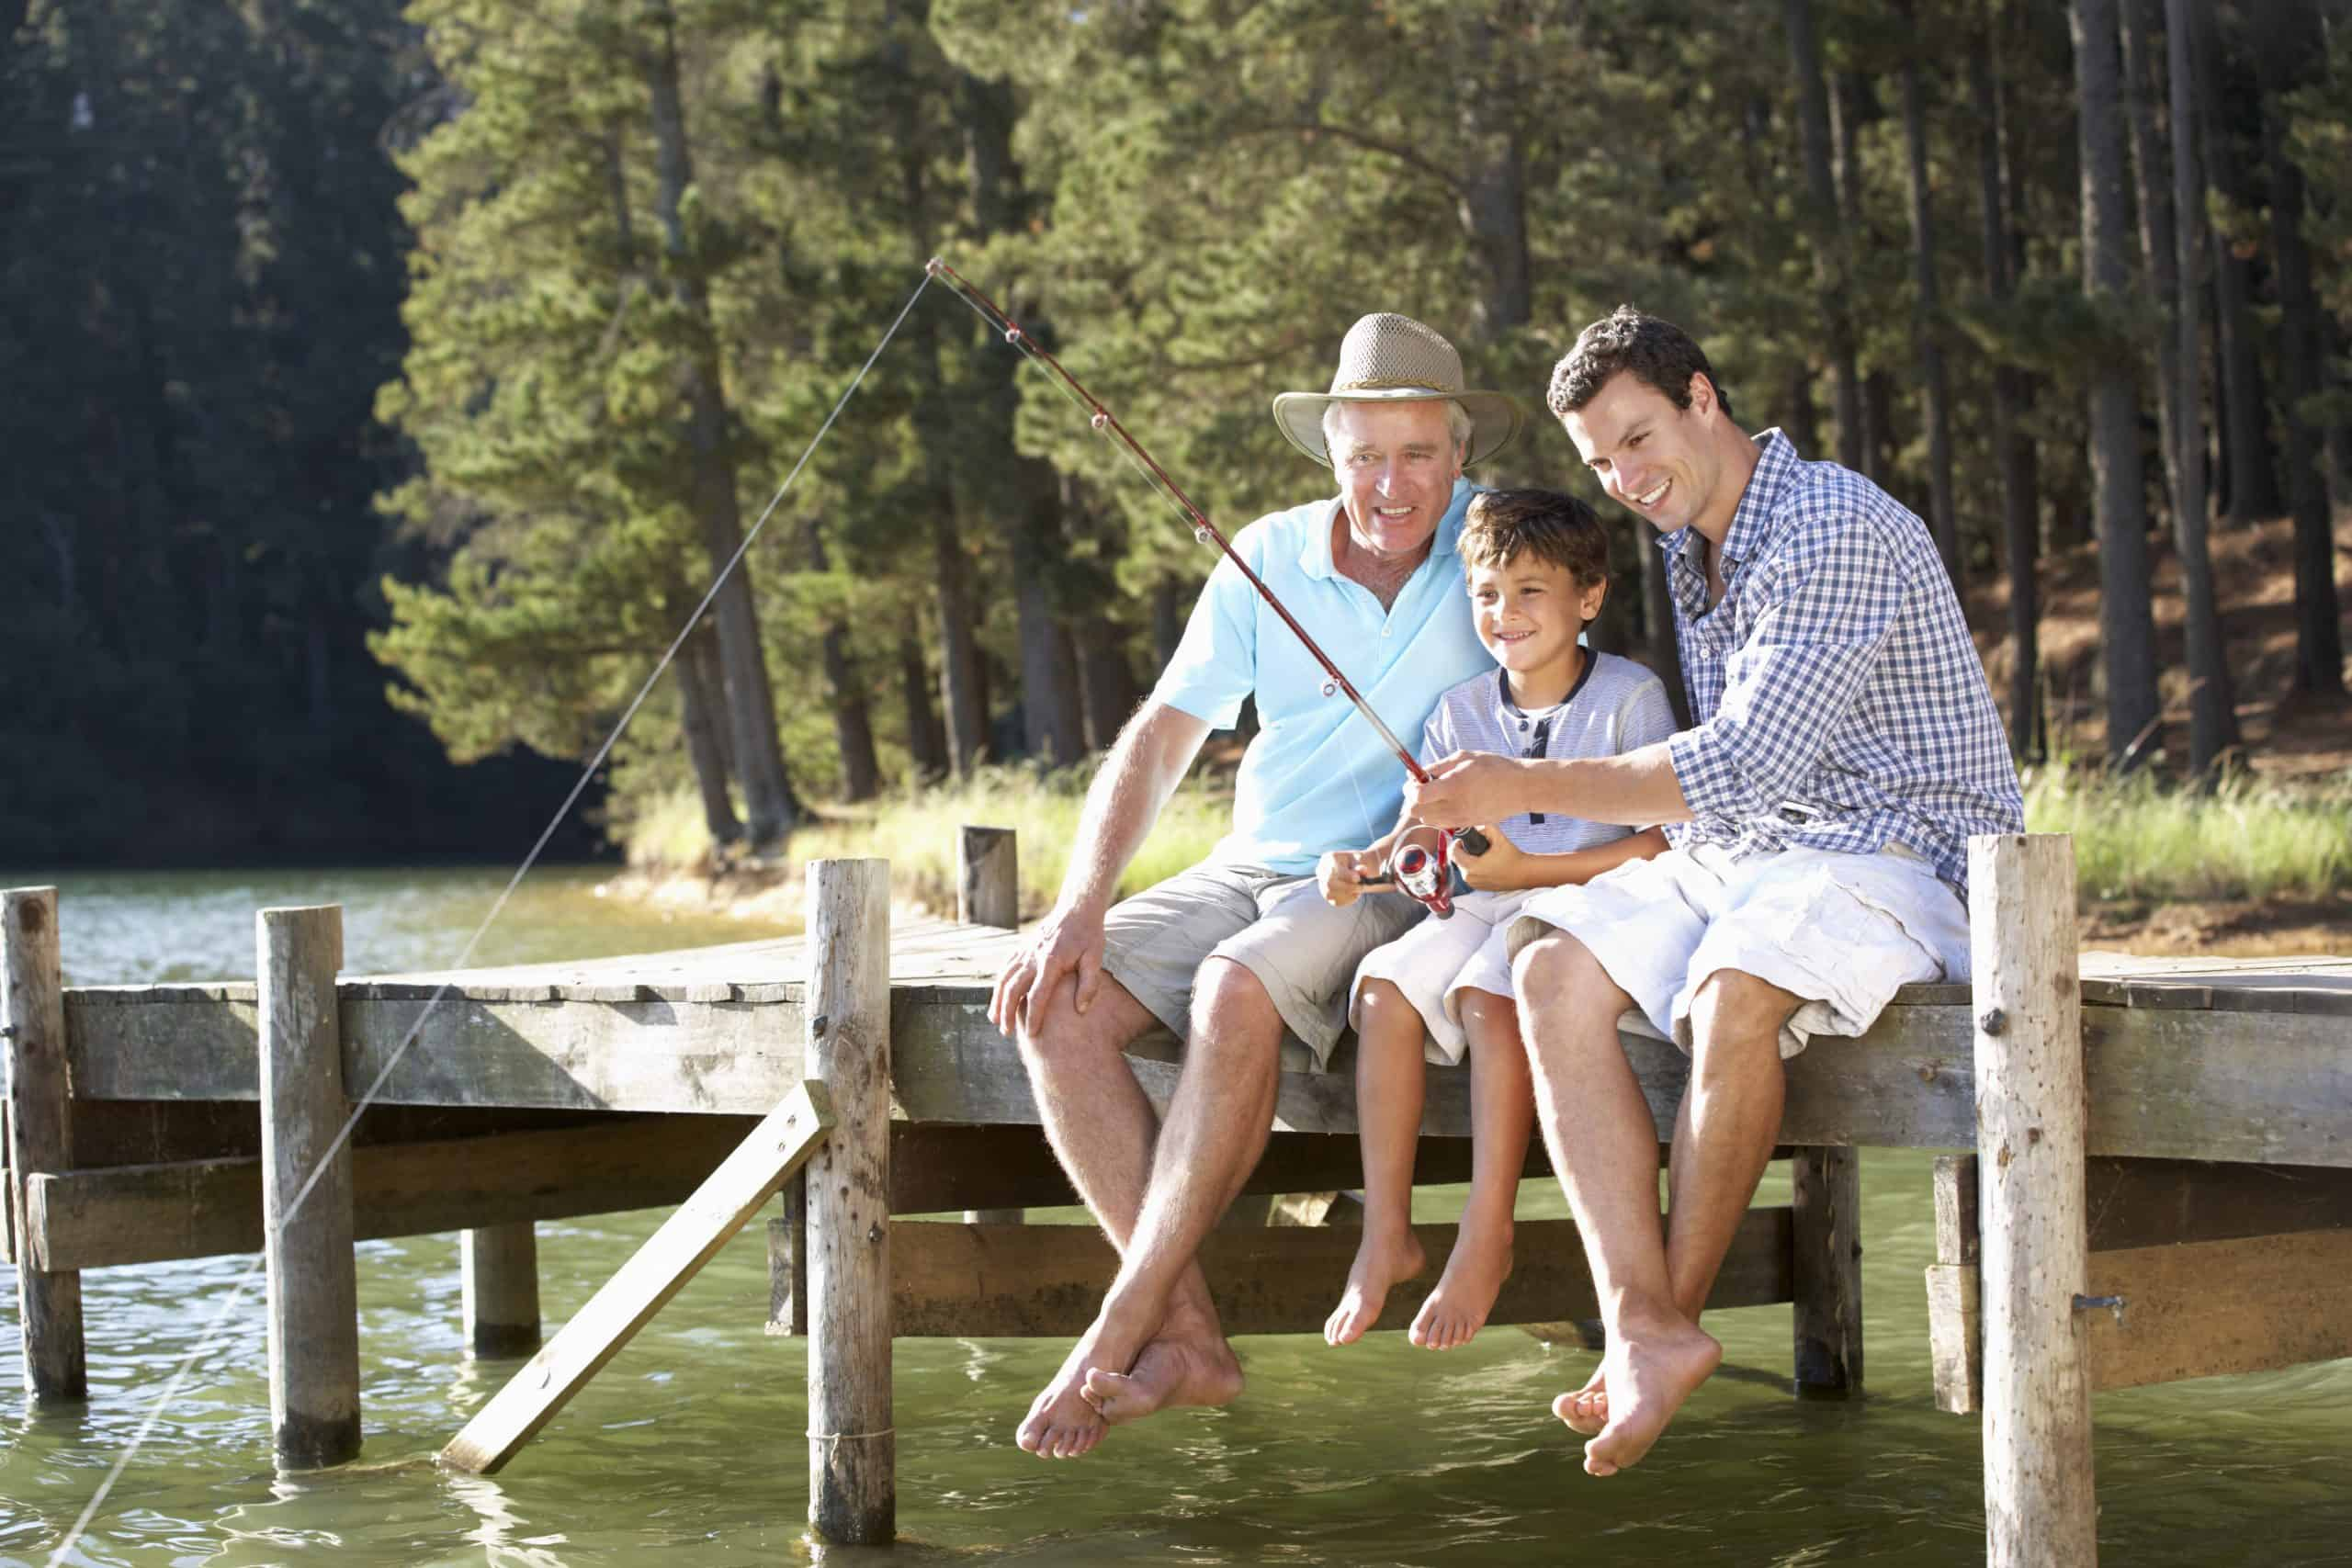 Used outdoor gear - Father,son and grandson fishing together